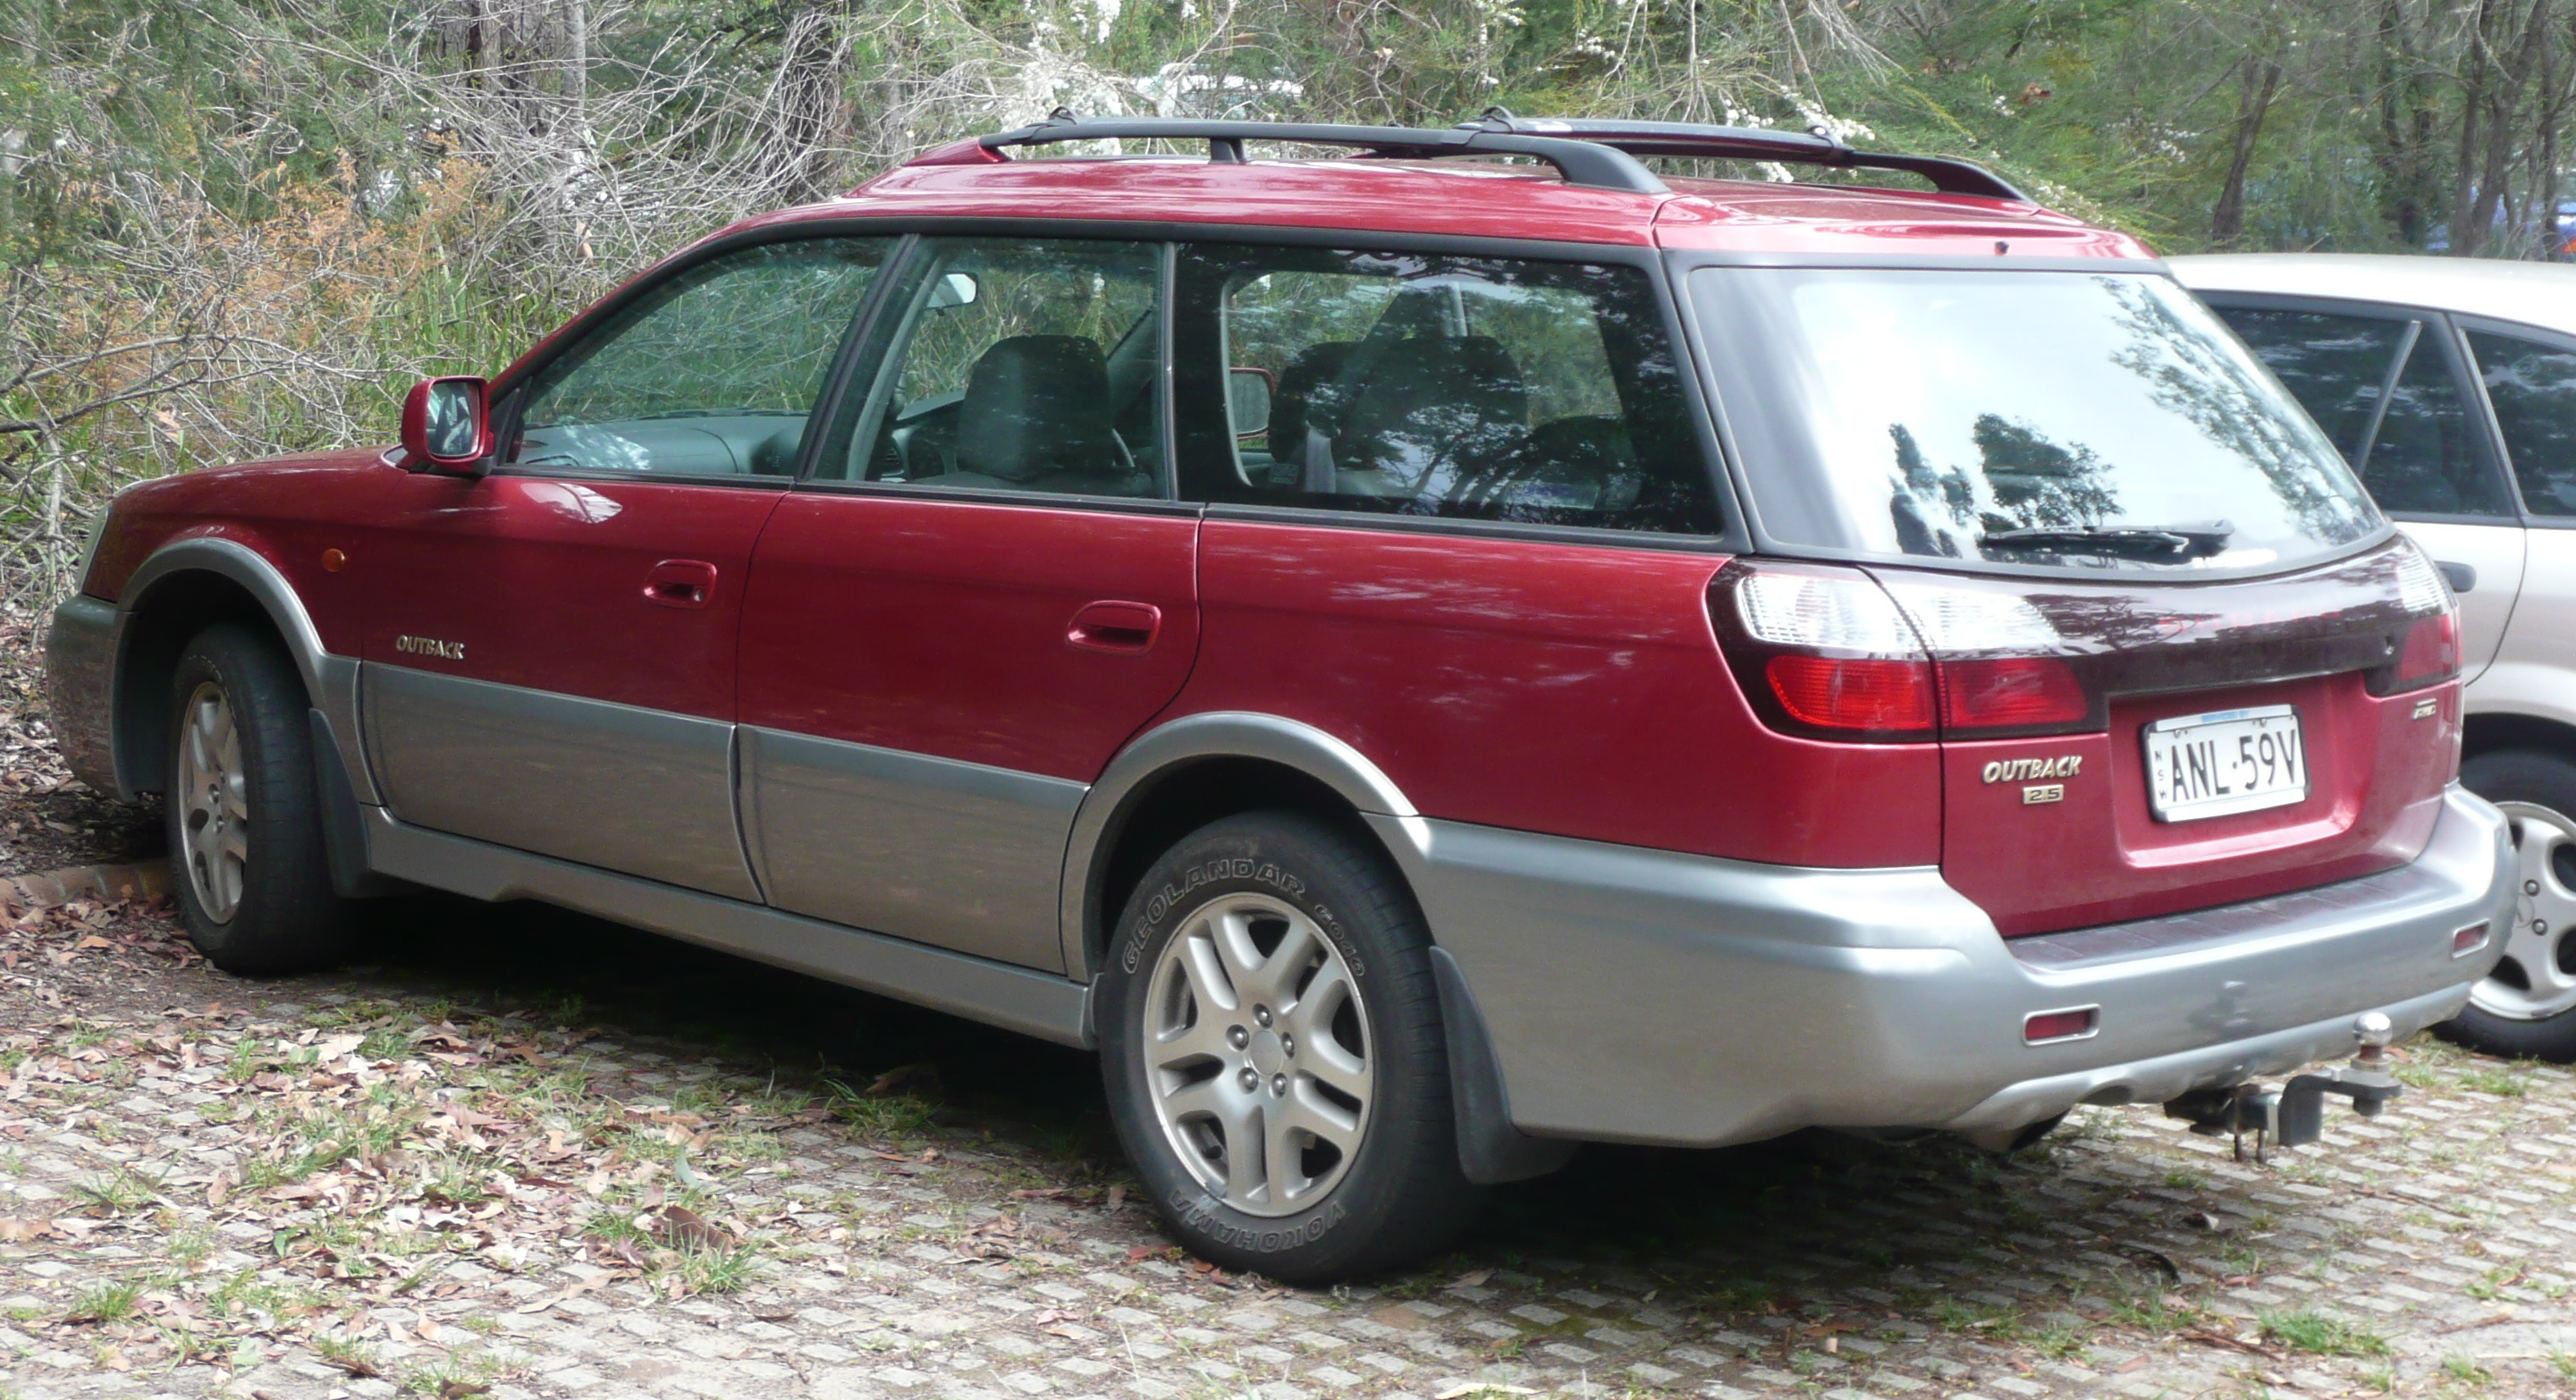 Subaru Older Models >> File:2003 Subaru Outback (BH9 MY03) Luxury station wagon ...